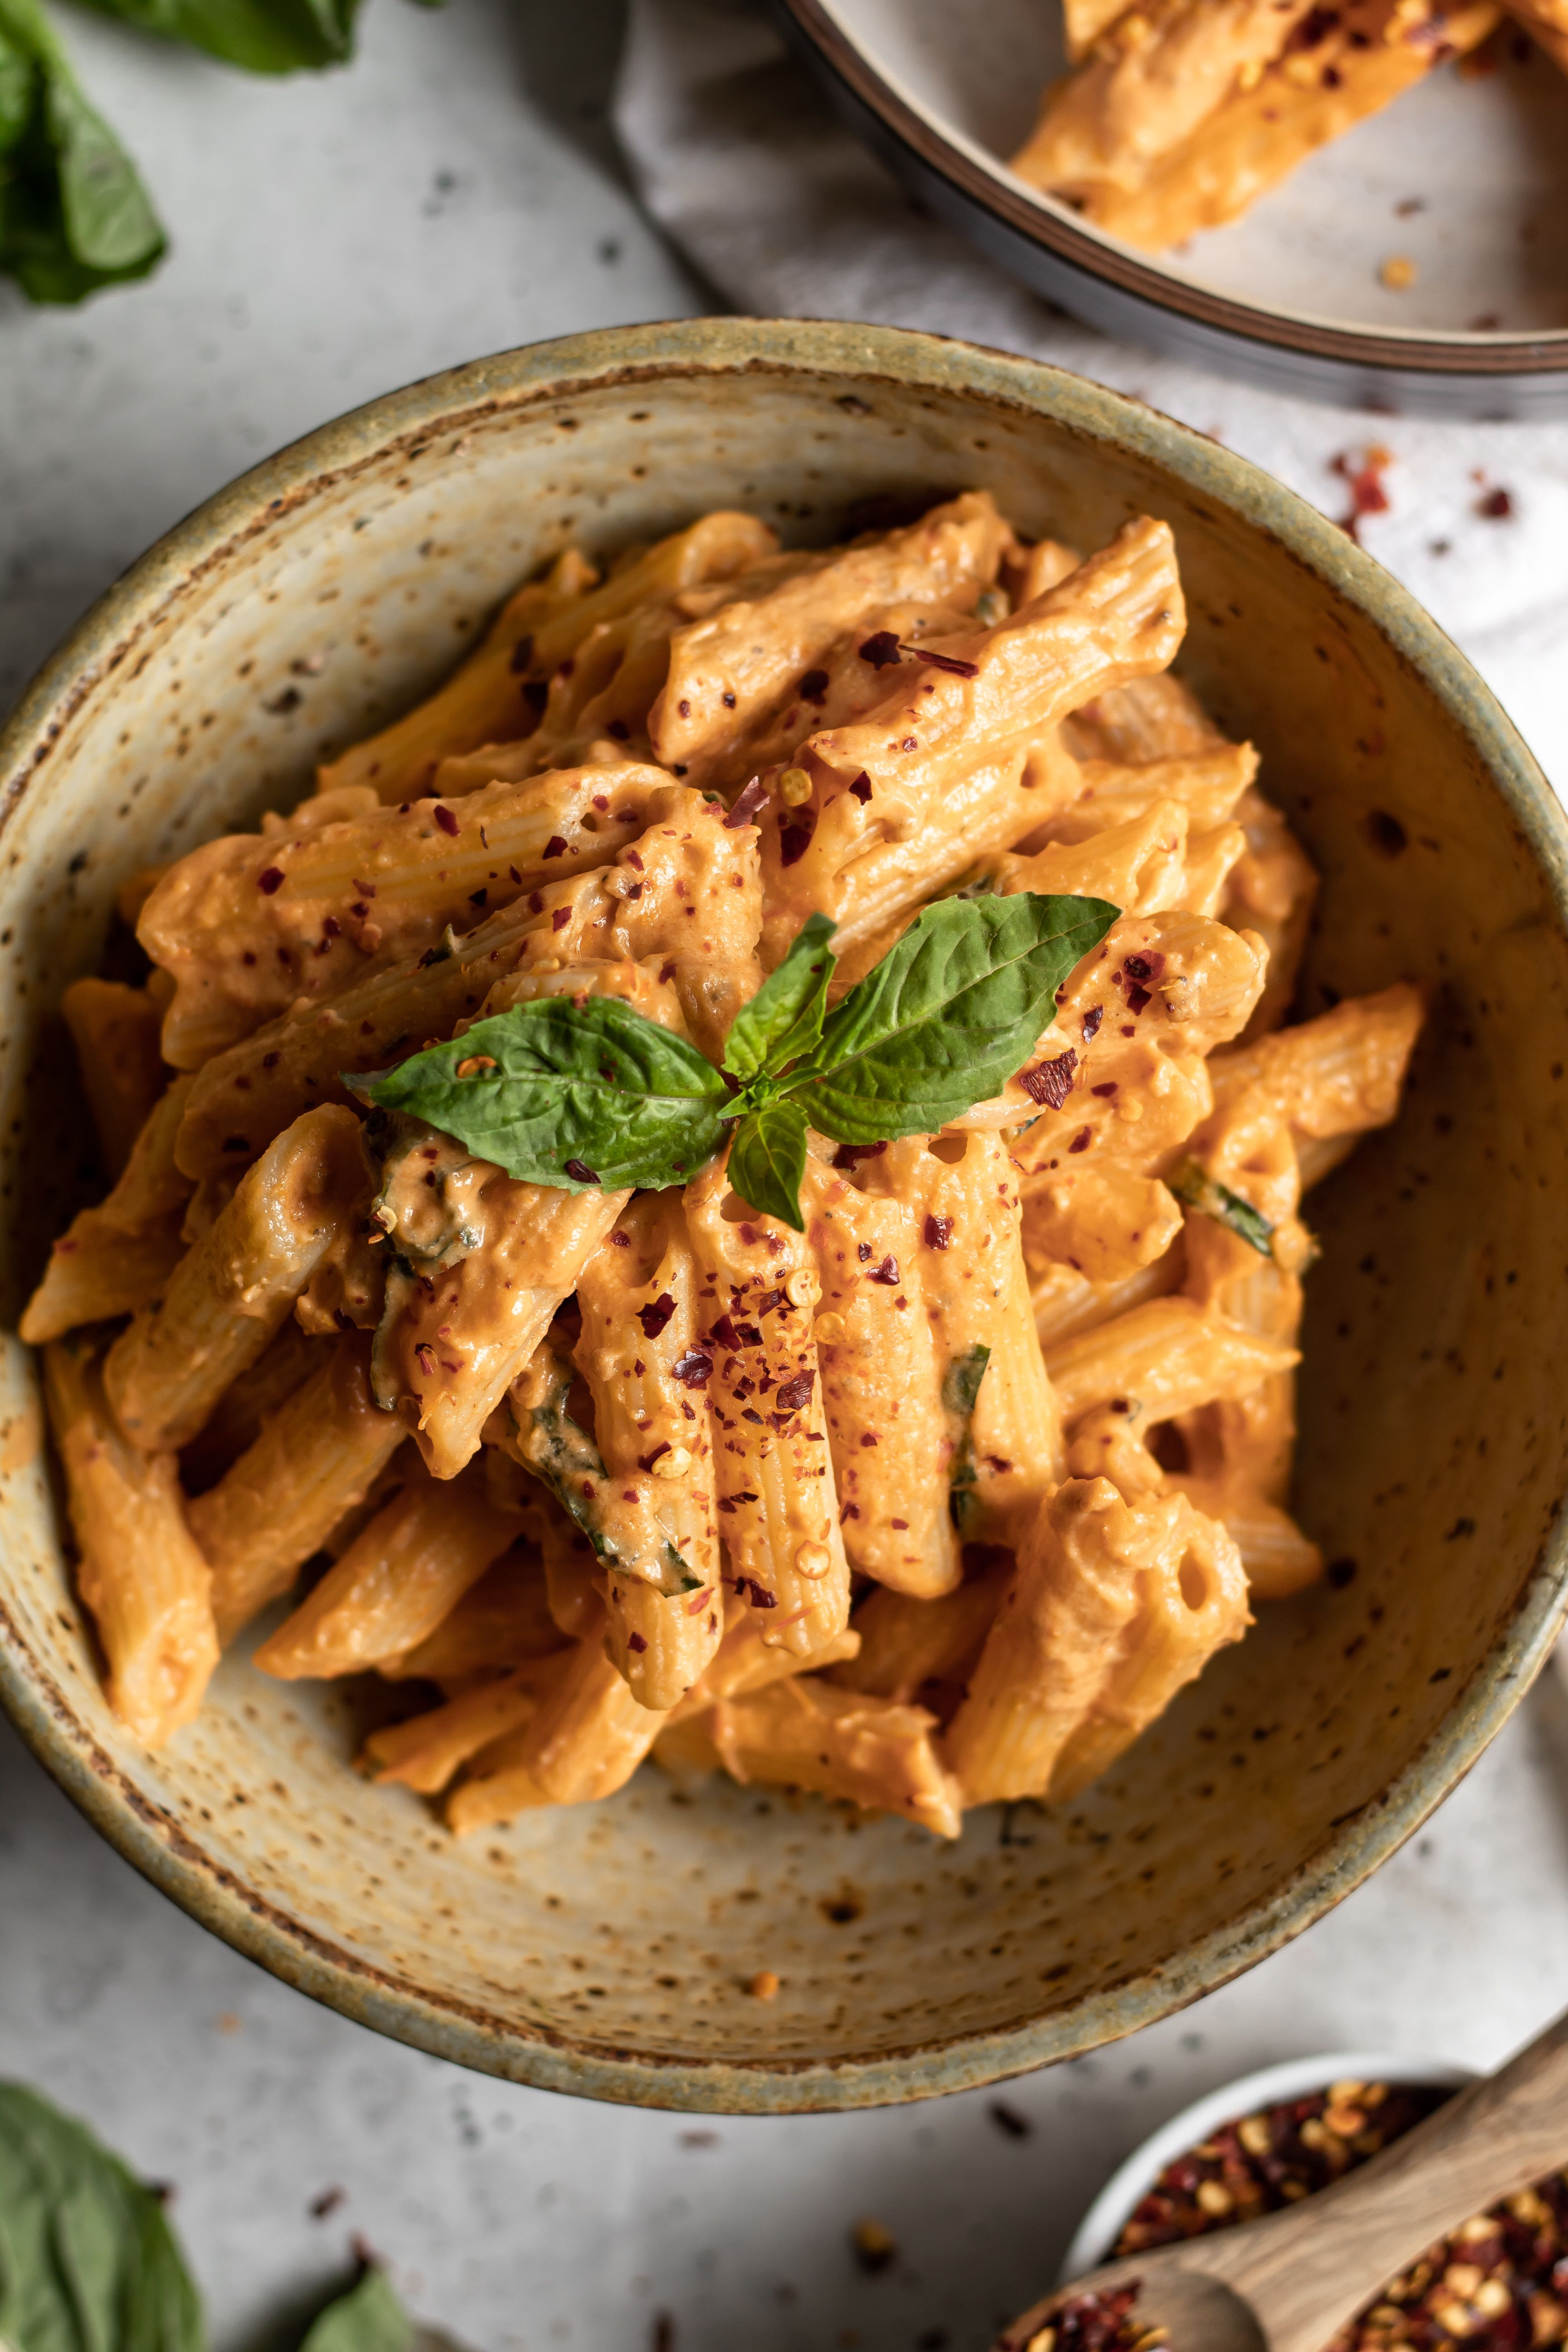 Creamy Roasted Tomato Sauce with Penne